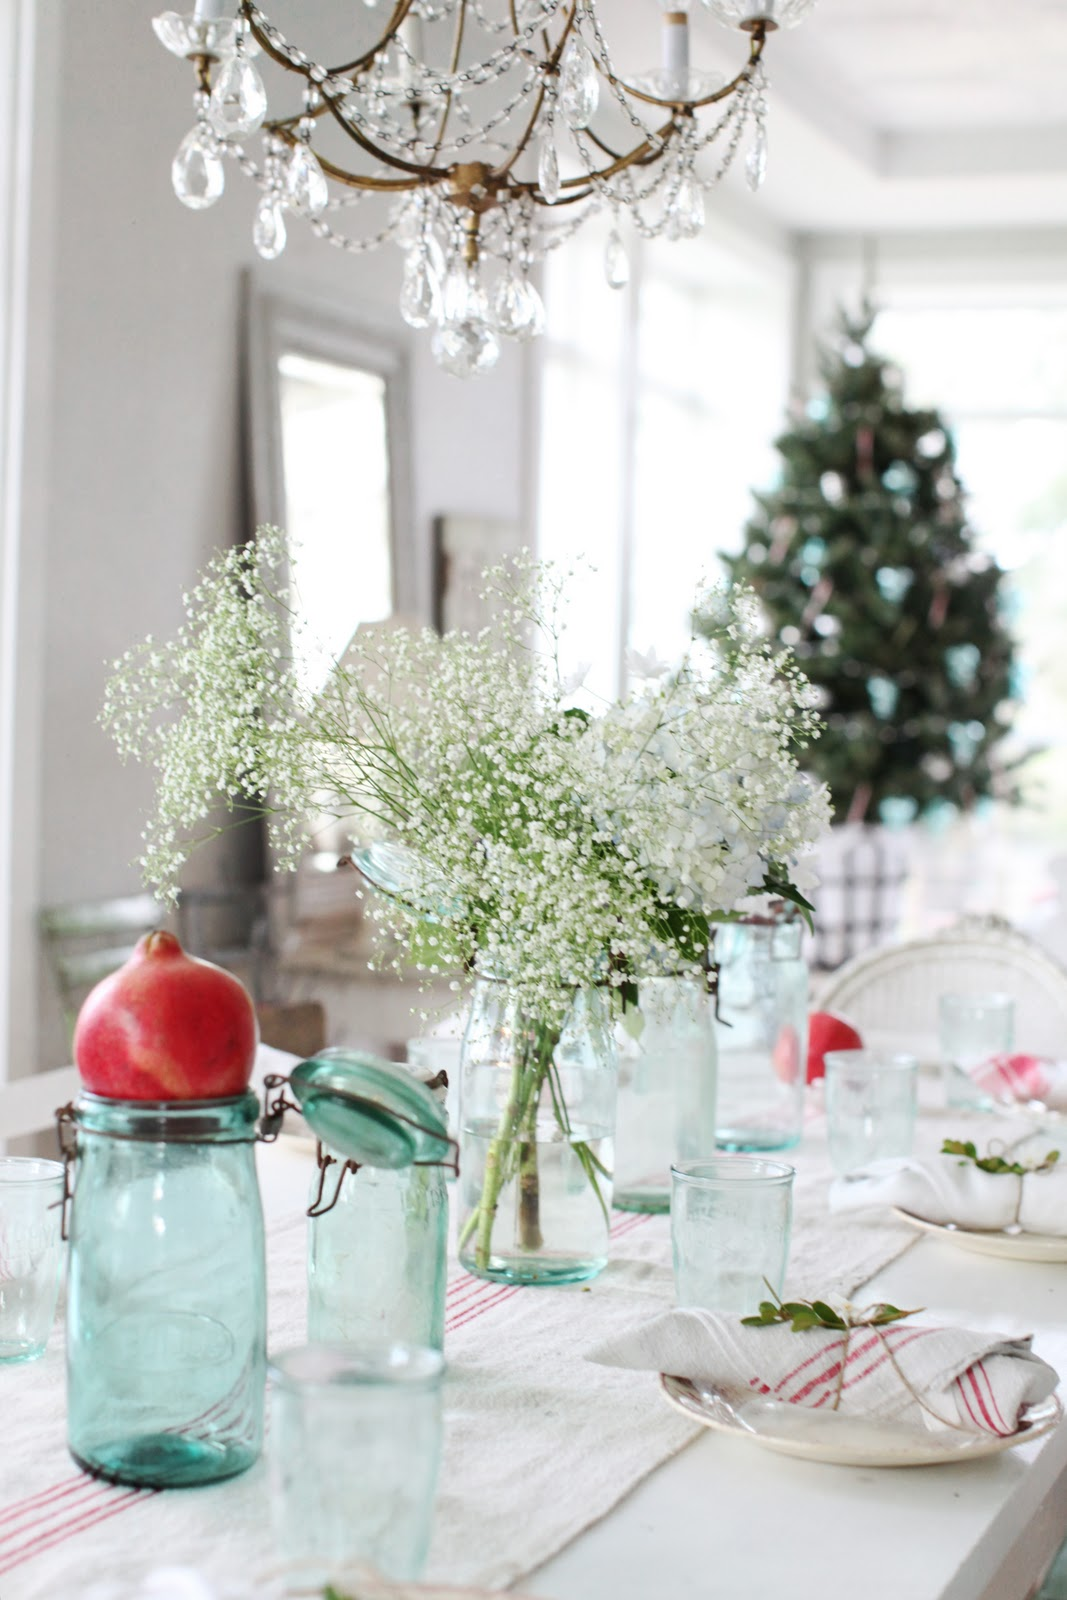 Dreamy Whites A Simple Christmas Table Setting. Christmas Decorating Cookies Games. Christmas Decorations To Make Yourself. Best Store For Cheap Christmas Decorations. Indoor Christmas Home Decorations. Homemade Christmas Decorations For Christmas Tree. Lighted Christmas Village Decorations. New Year And Christmas Decorations. Ideas For Christmas Tree Lights